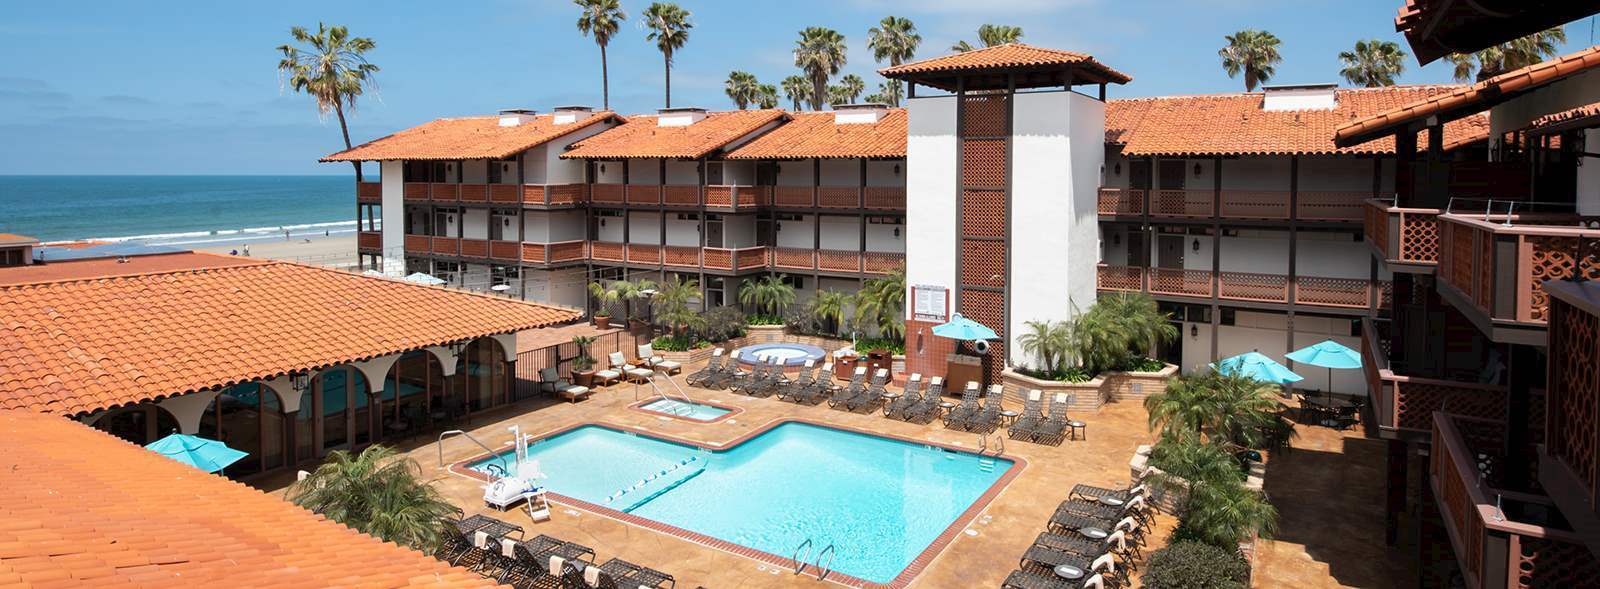 Amenities of La Jolla Shores Hotel California